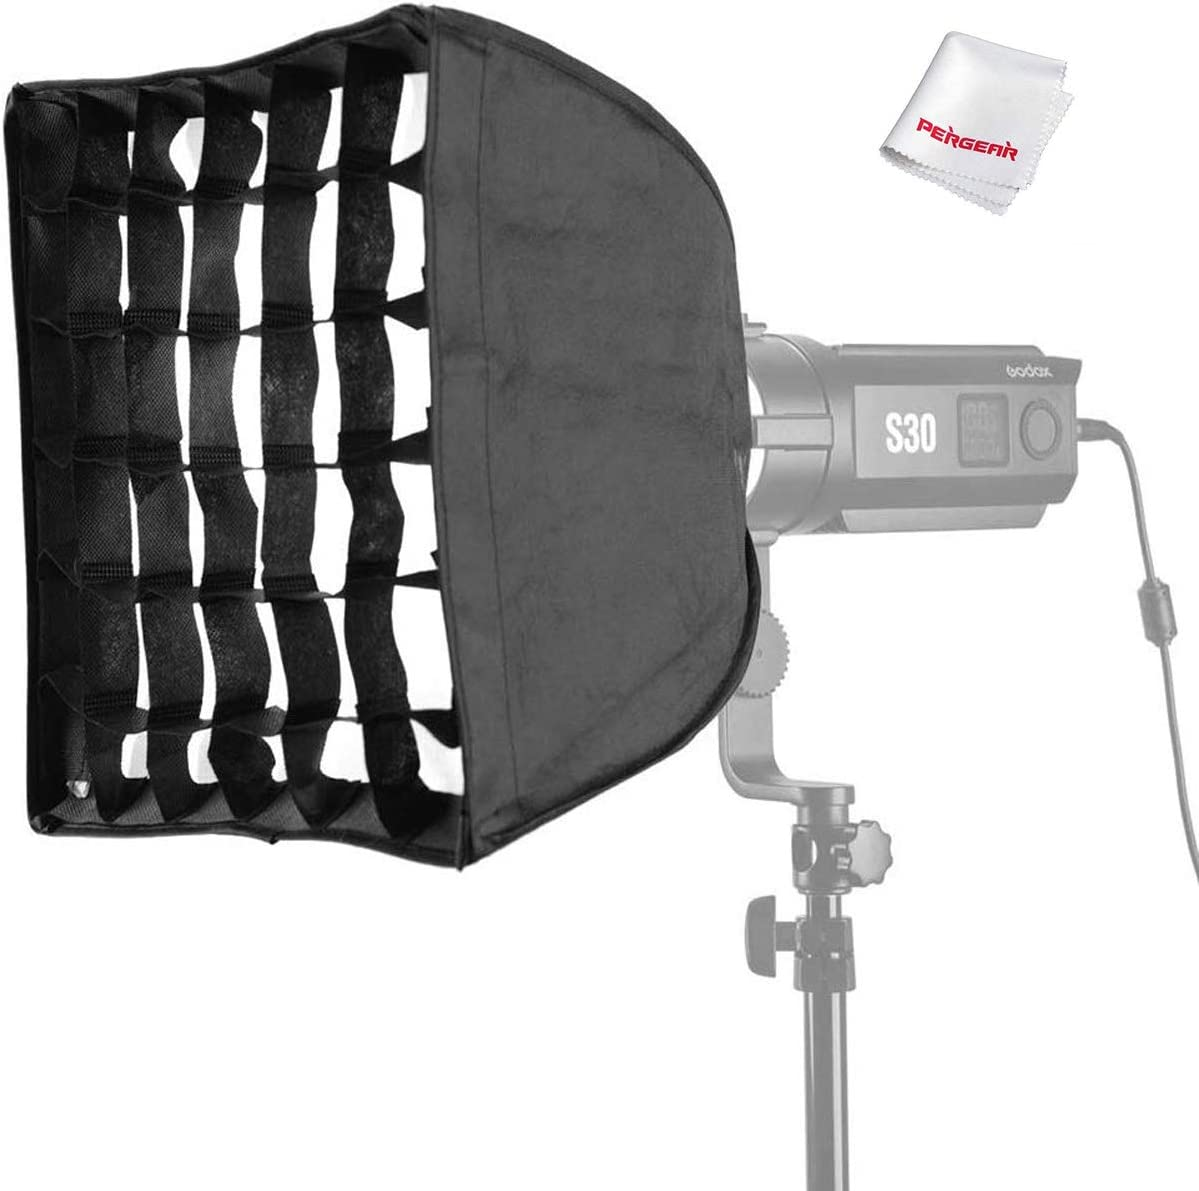 W//Pergear Cloth Godox SA-P Projection Attachment with a SA-01 85MM Lens for Godox S30 Focusing LED Video Light